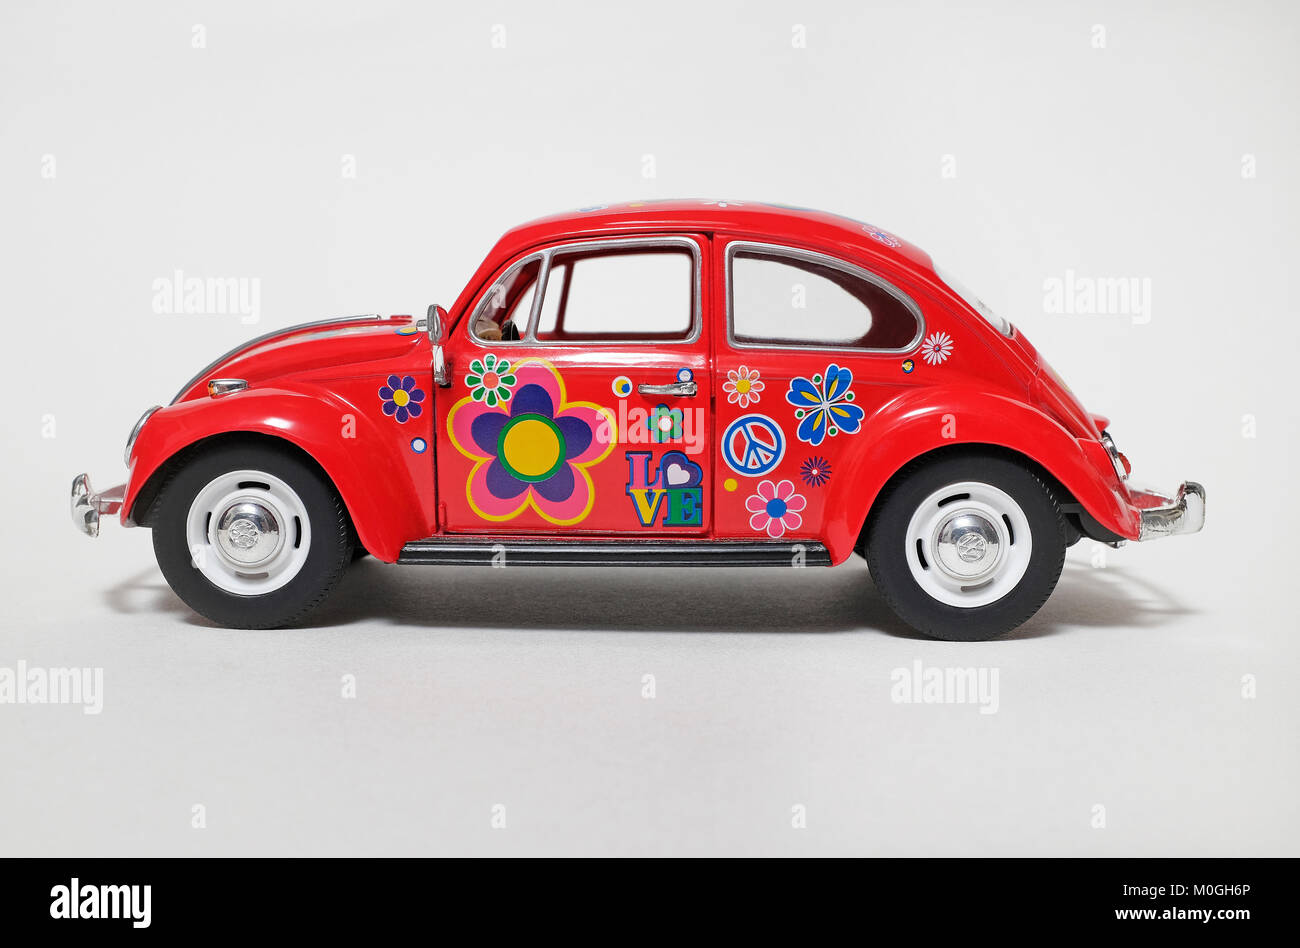 1970 Volkswagen Beetle Stock Photos Amp 1970 Volkswagen